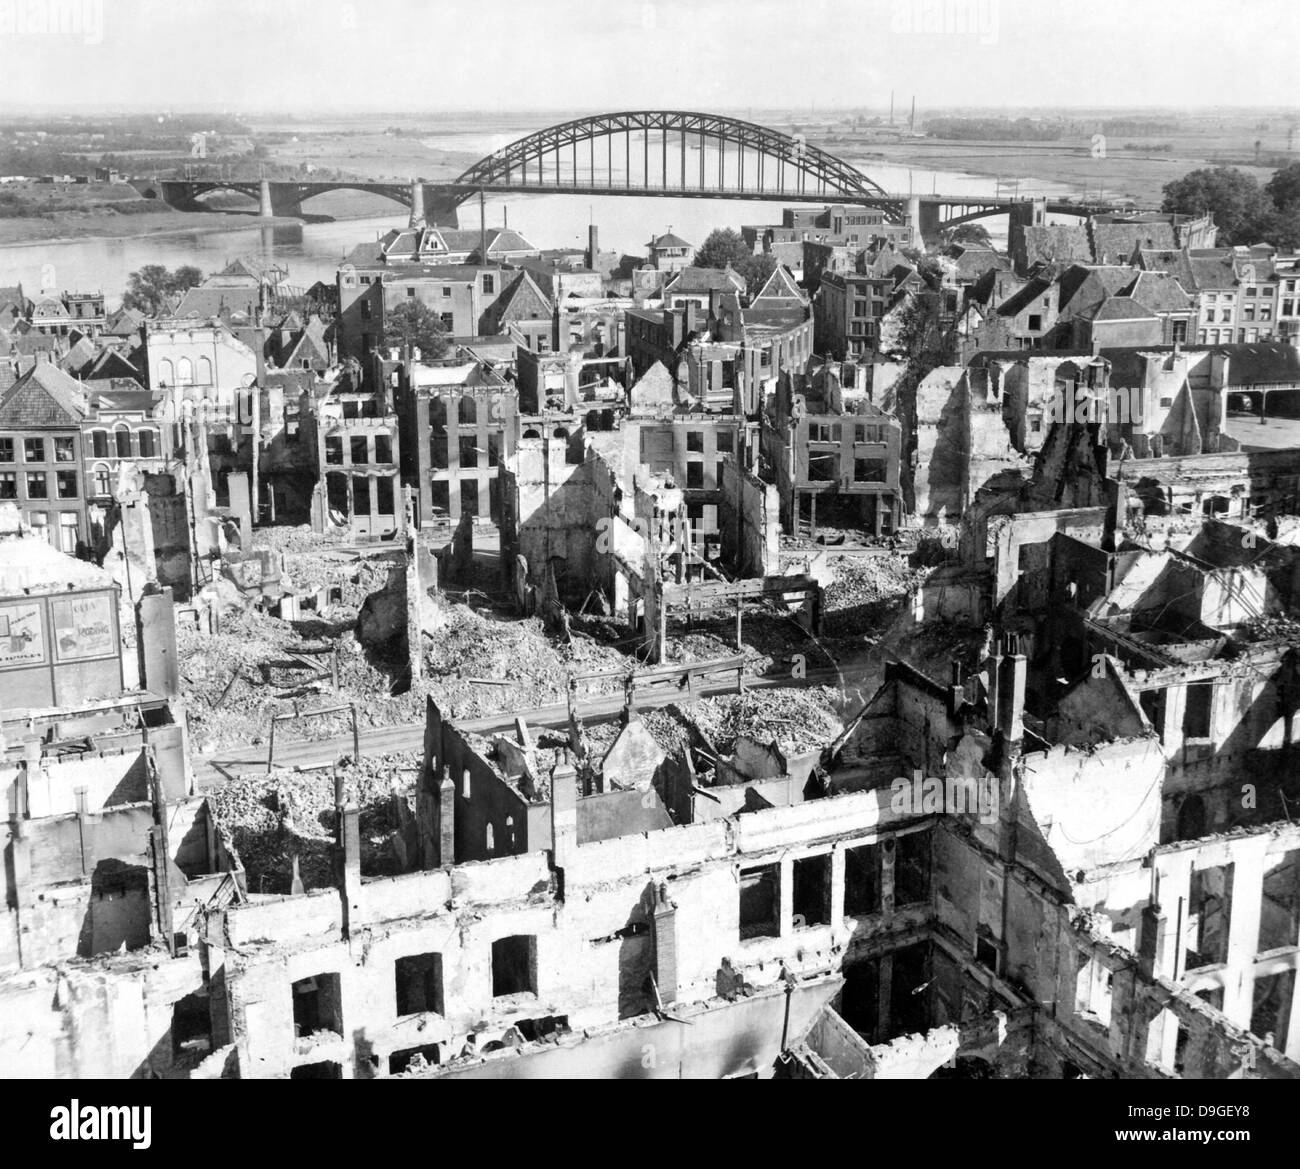 A view of the city of Nijmegen, Holland, after it was destroyed during WWII. - Stock Image